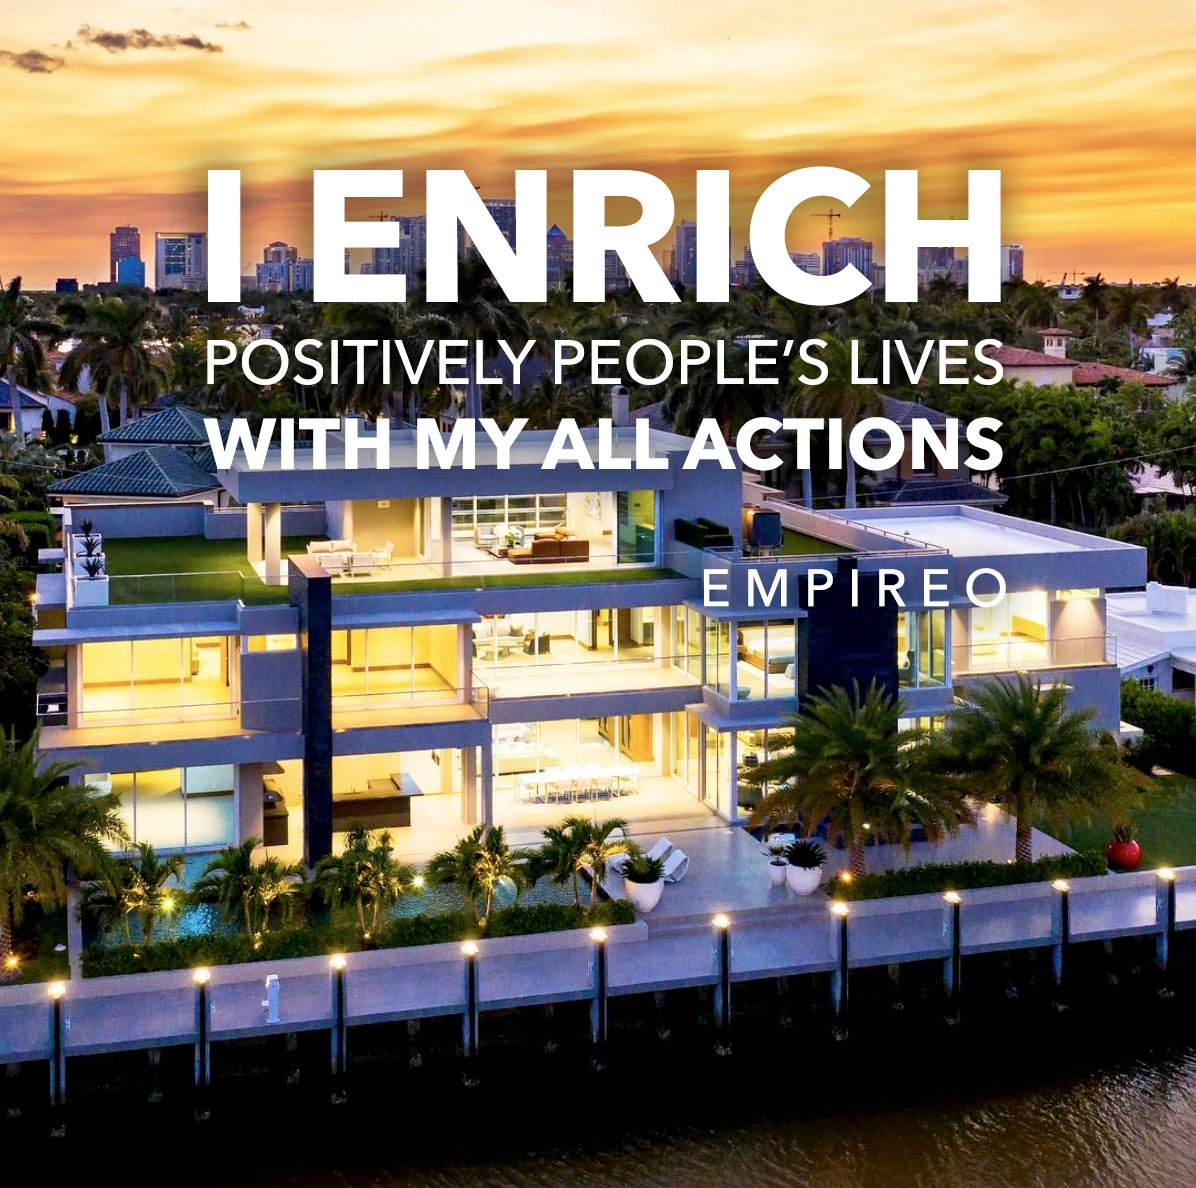 """#ENRICH positively people's lives with all your actions.  """"QUANTUM LEAP TO MILLIONAIRE""""💰💎 ▶️ I want to know more about the program https://empireoquantumleap.com/  #MILLIONAIREMINDSET #LUXURYLIFE #ENRICHINGWITHEVERYACTION"""